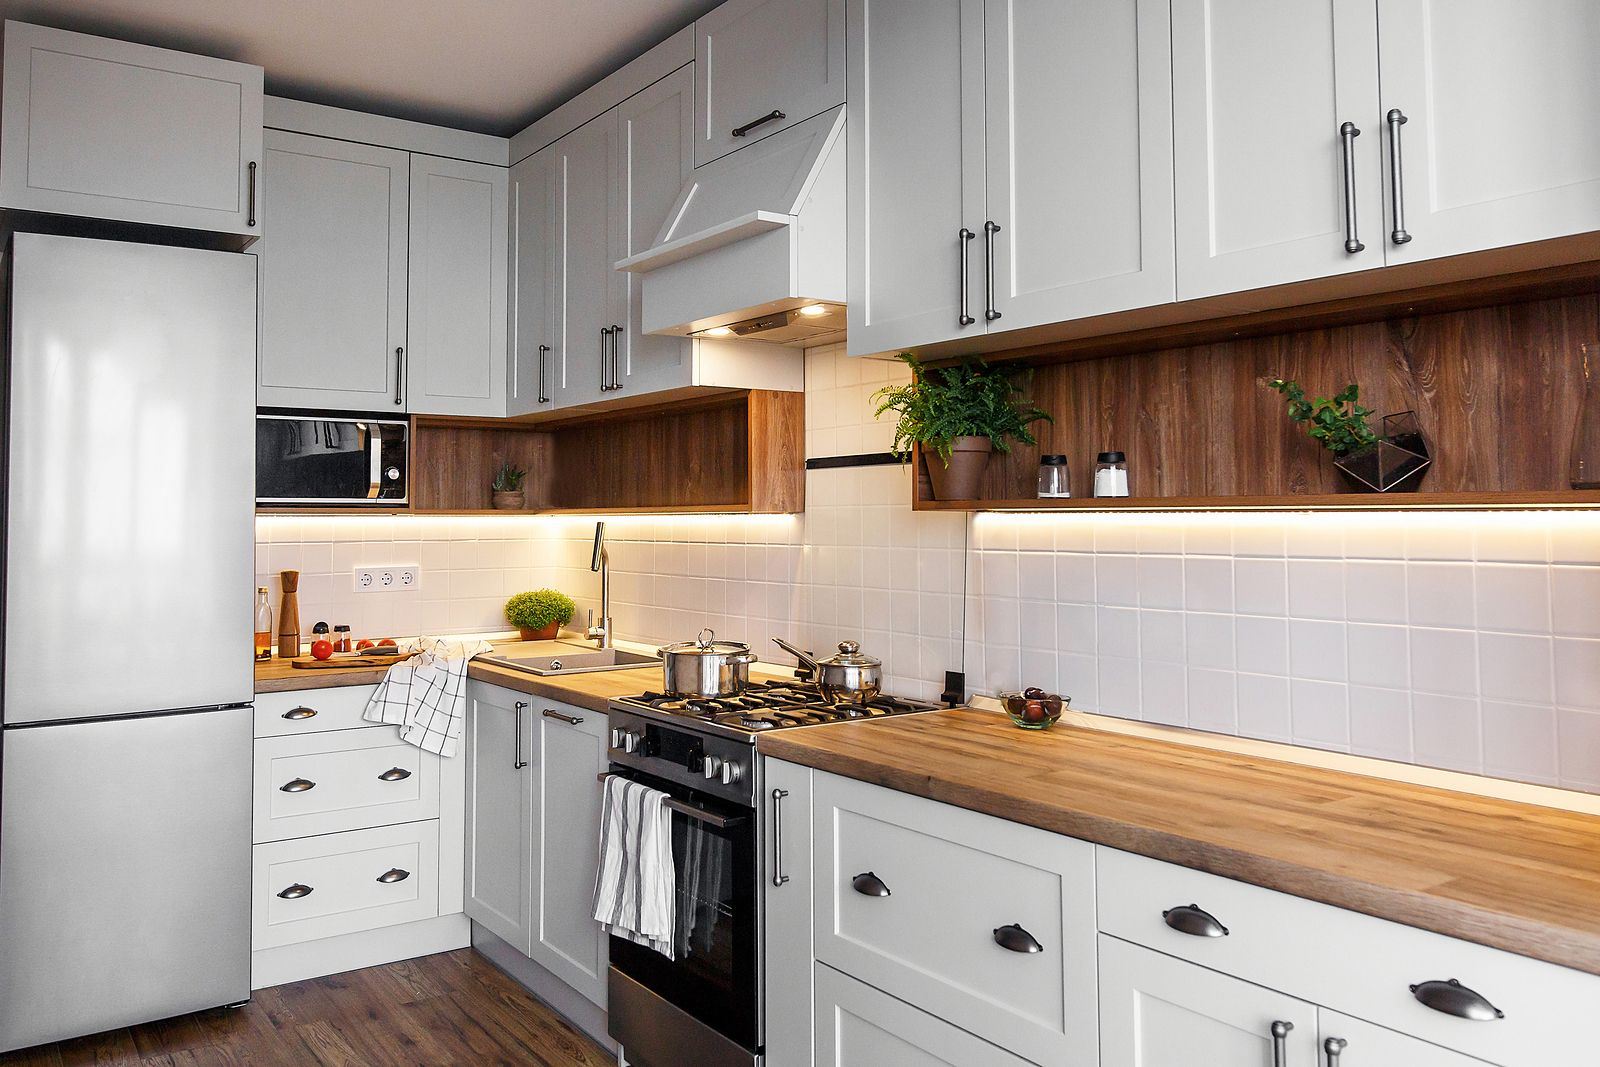 White cabinet with bright lights